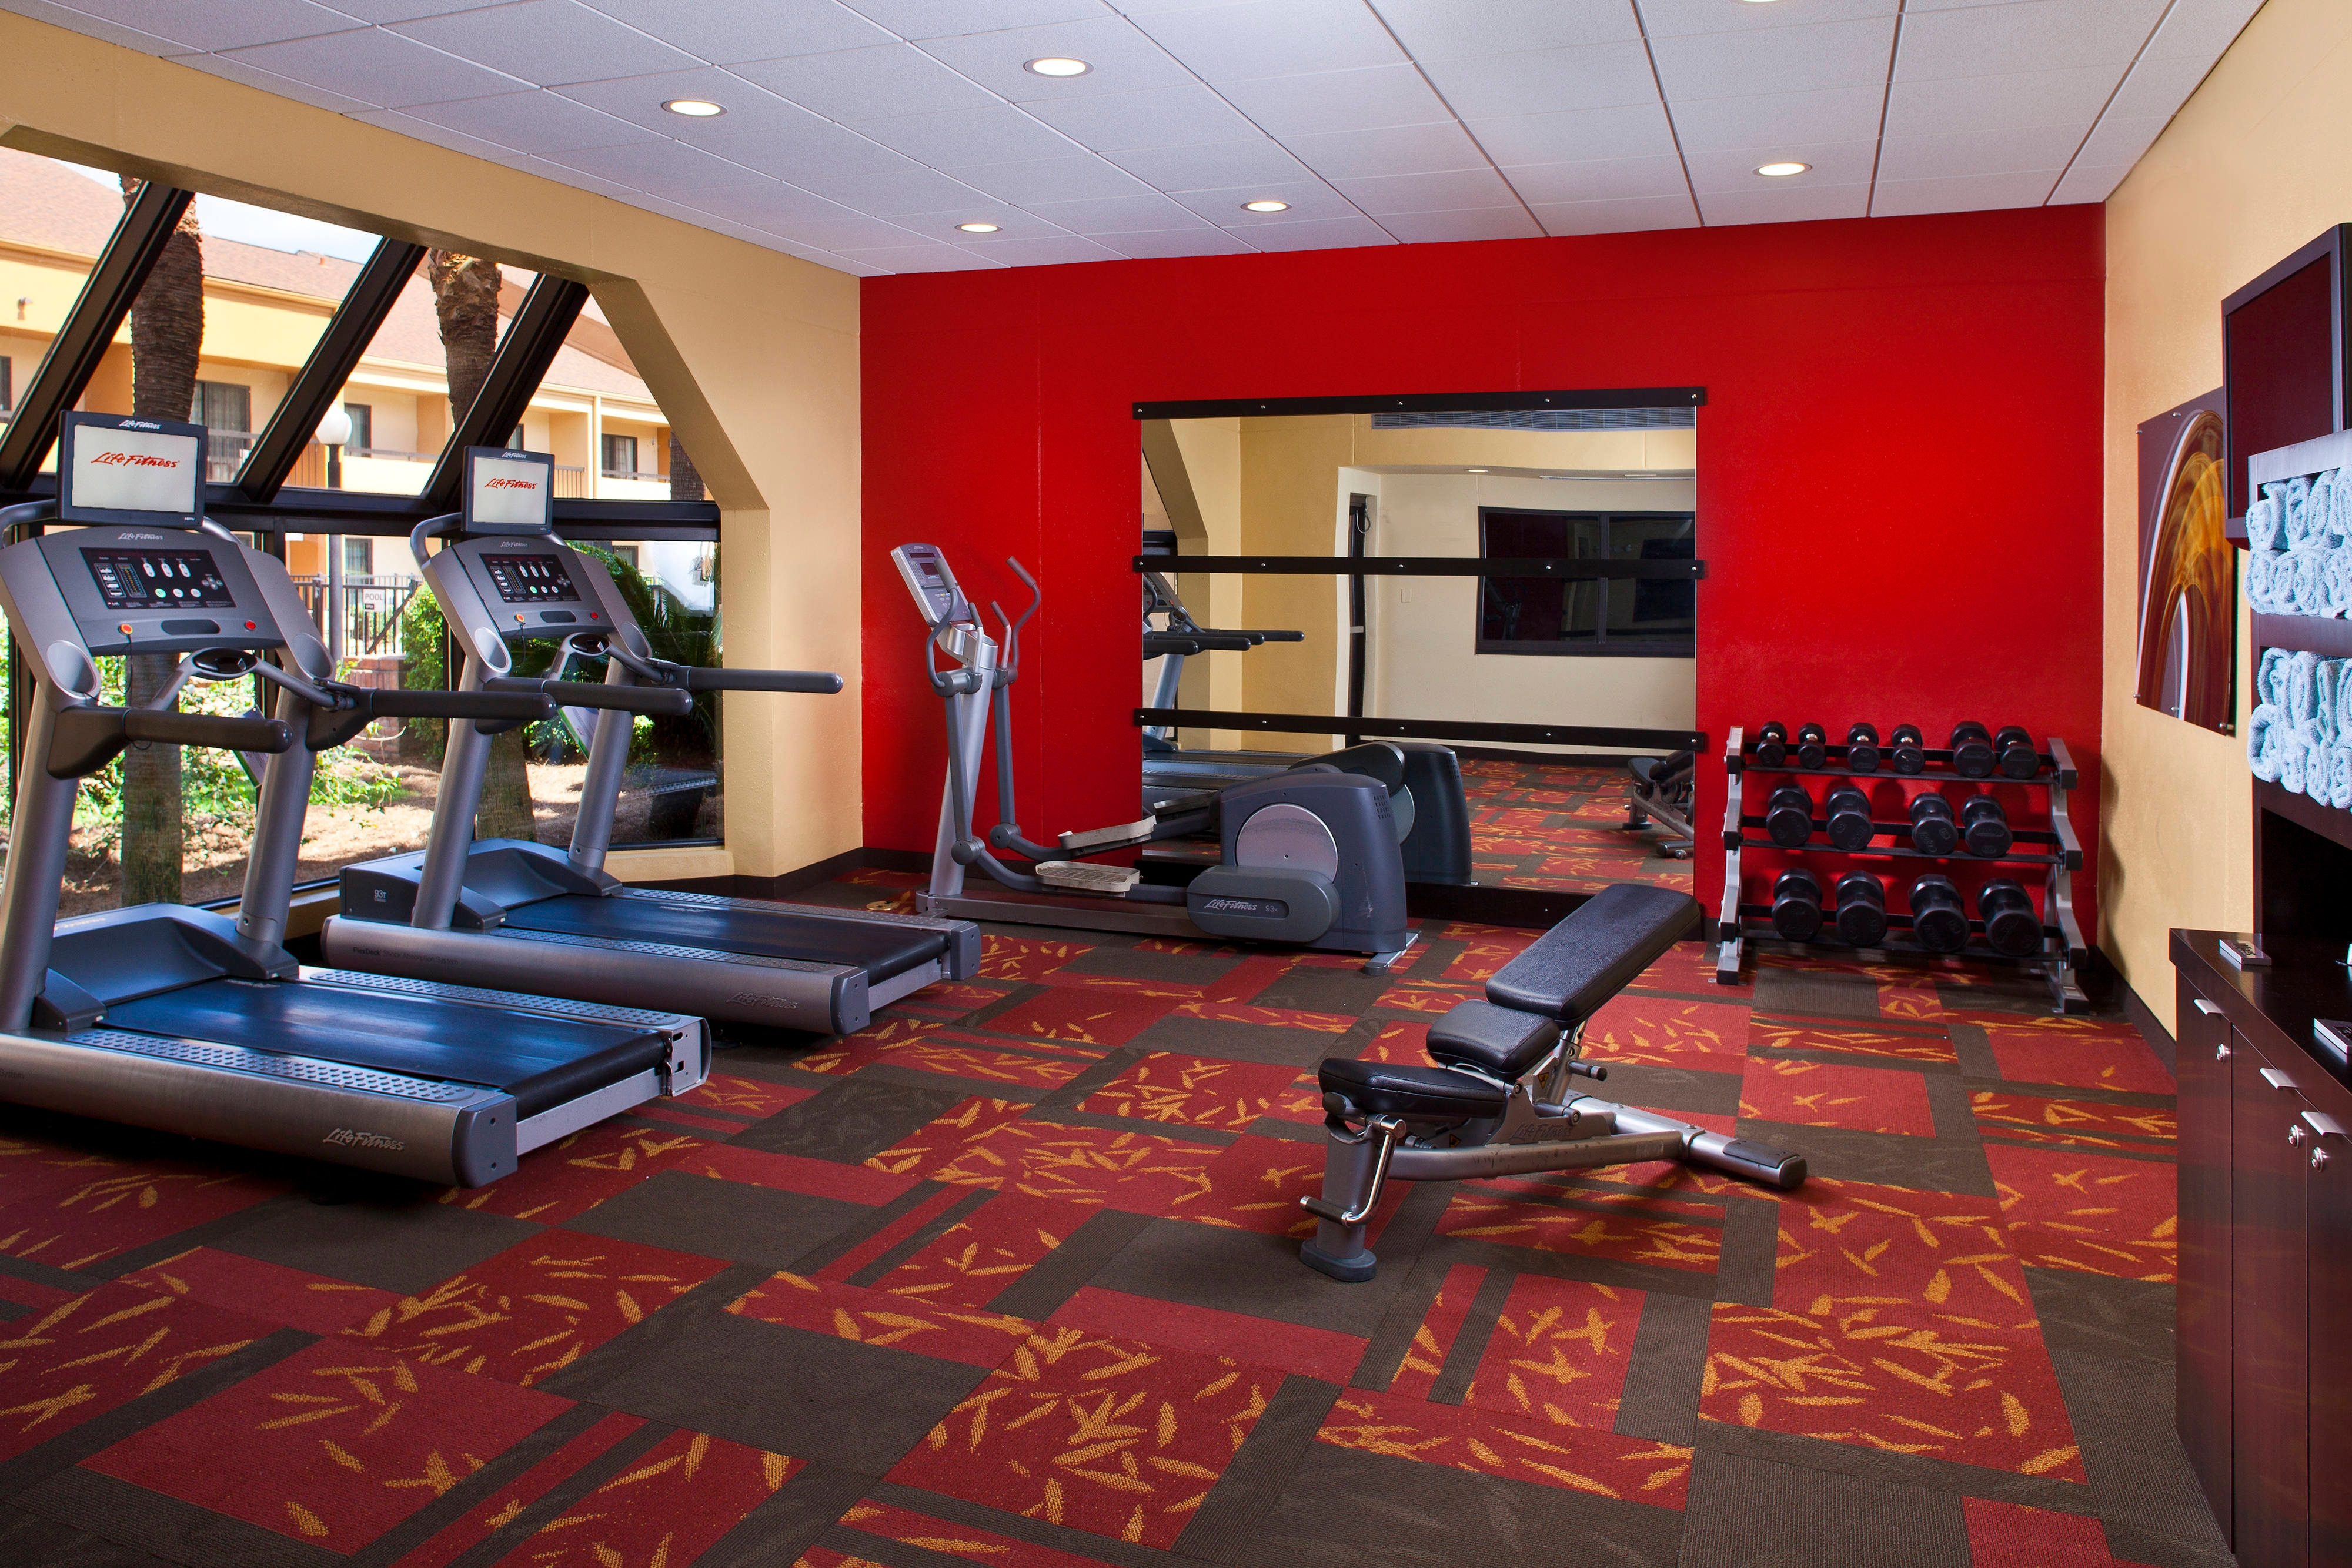 Tallahassee Hotel Fitness Center